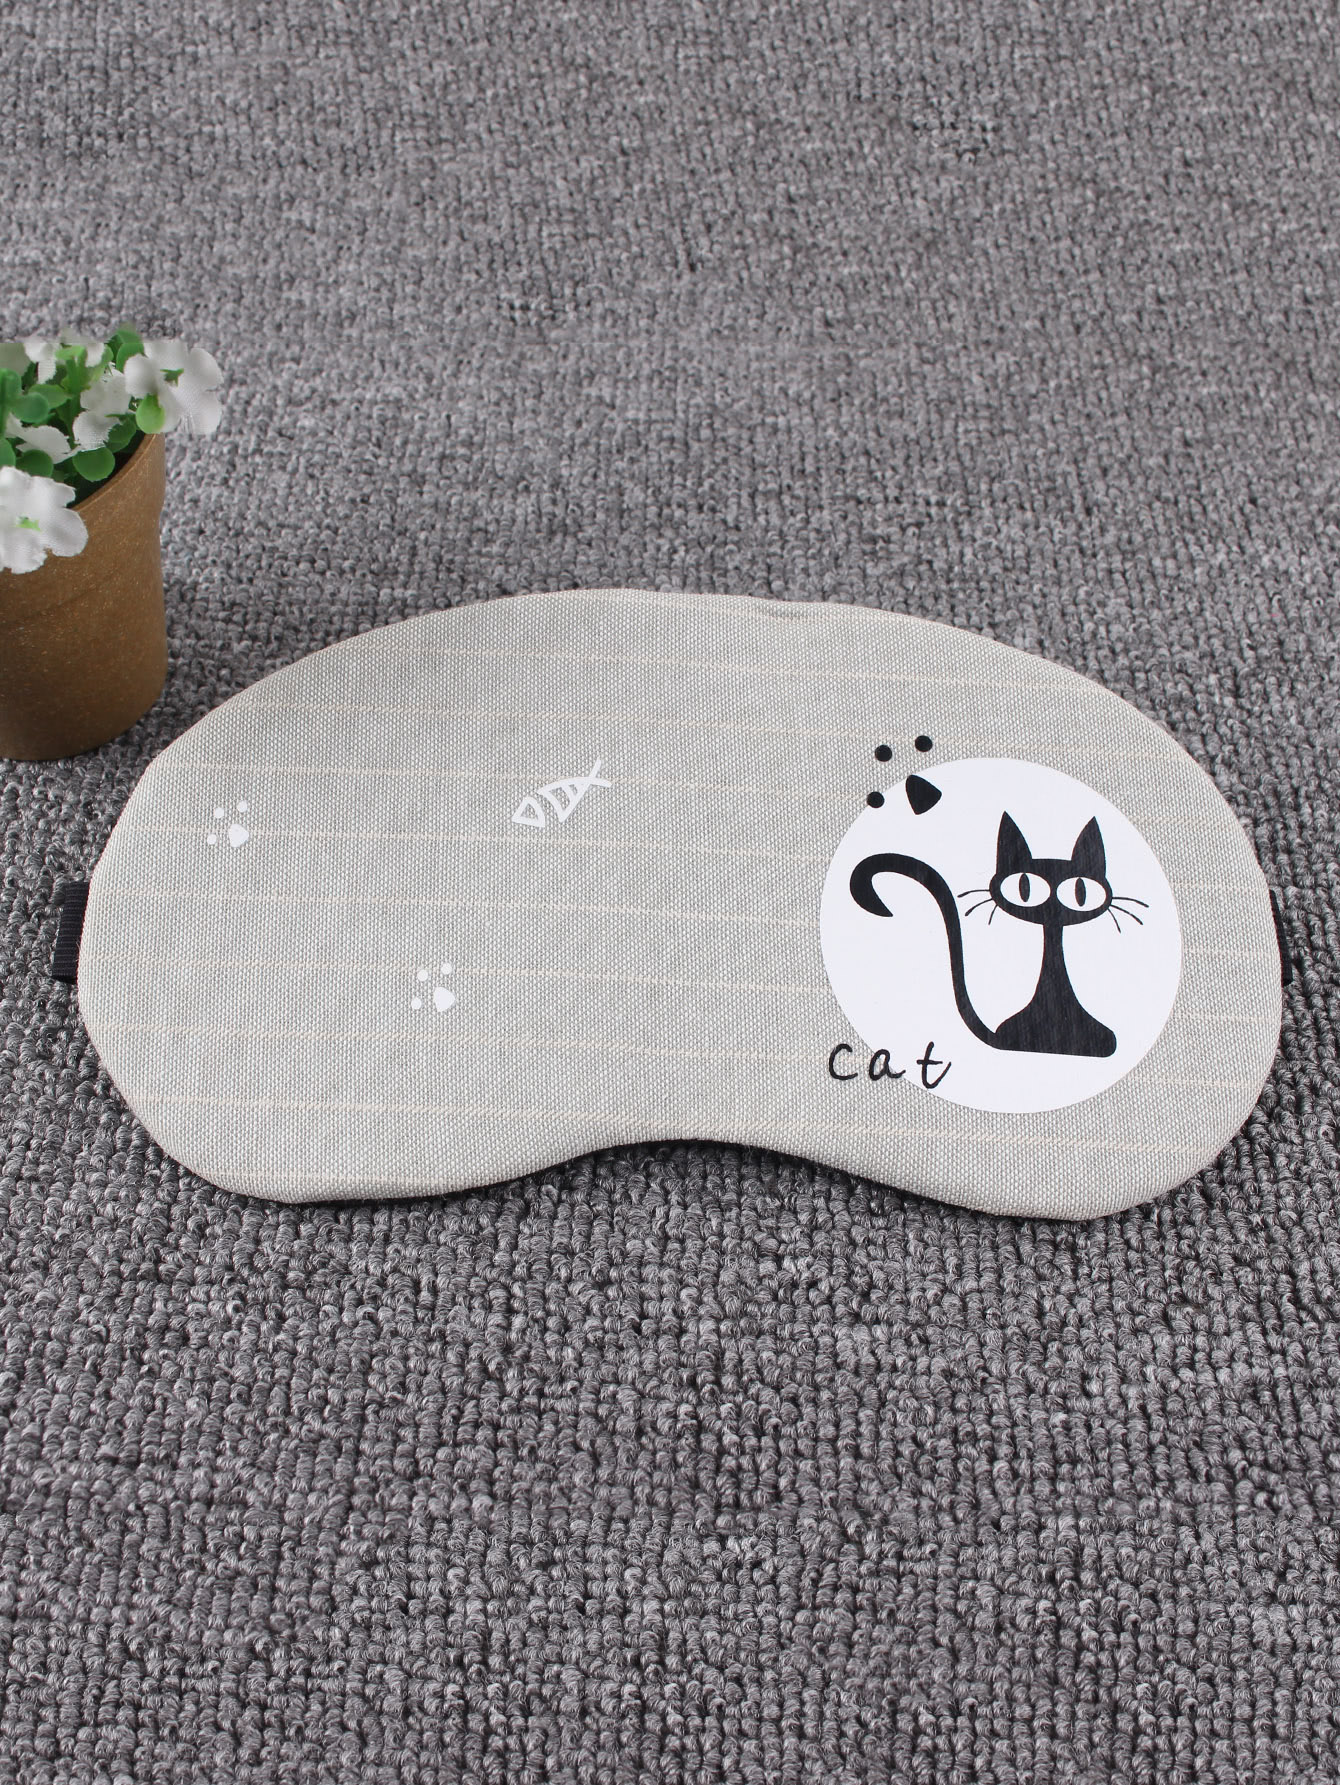 Fish & Cat Print Sleeping Eye Mask cat eye glasses tinize 2015 tr90 5832